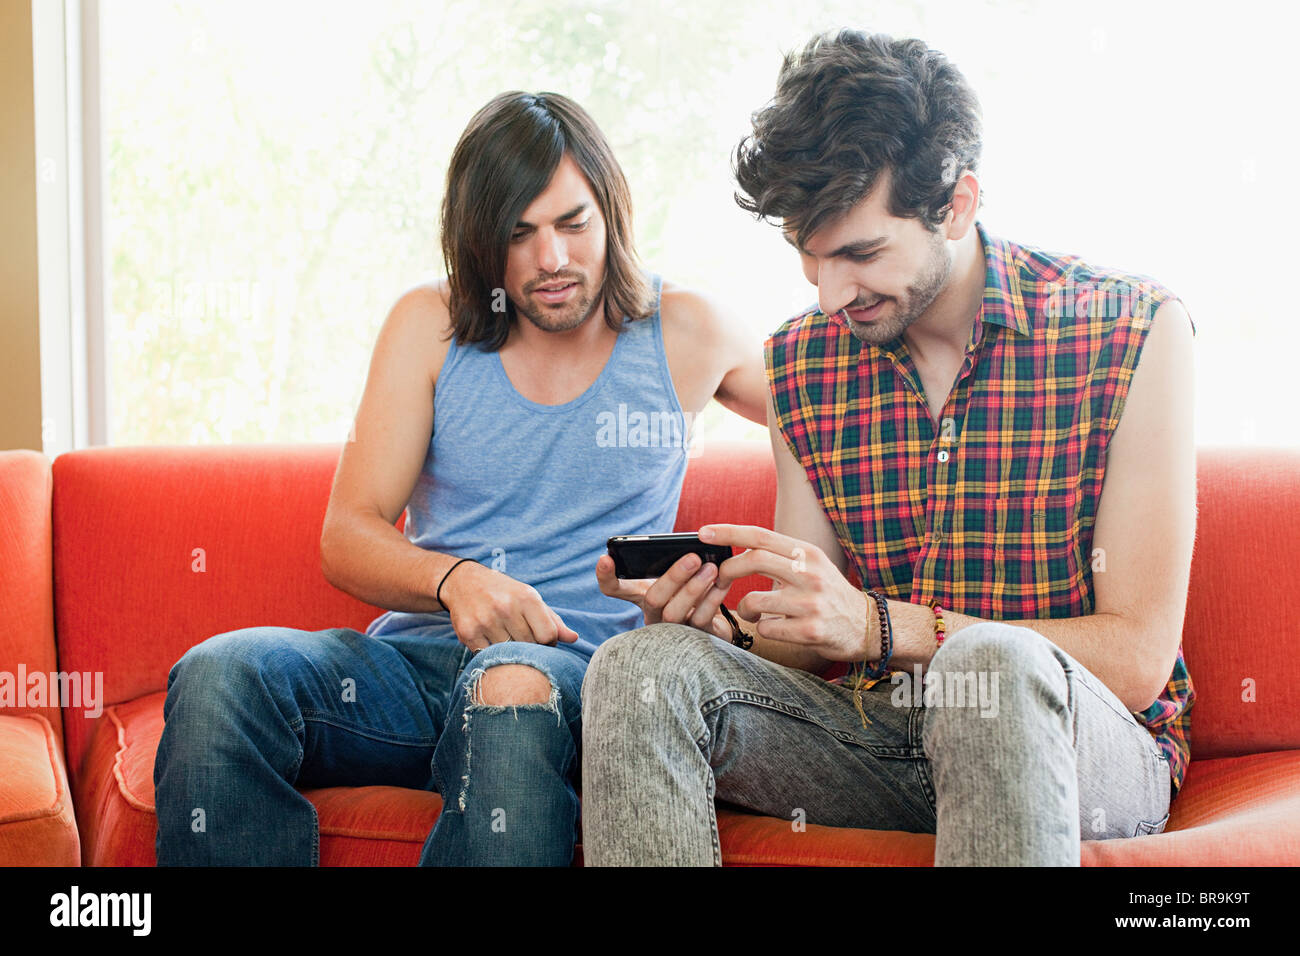 Young men on sofa with hand held device - Stock Image